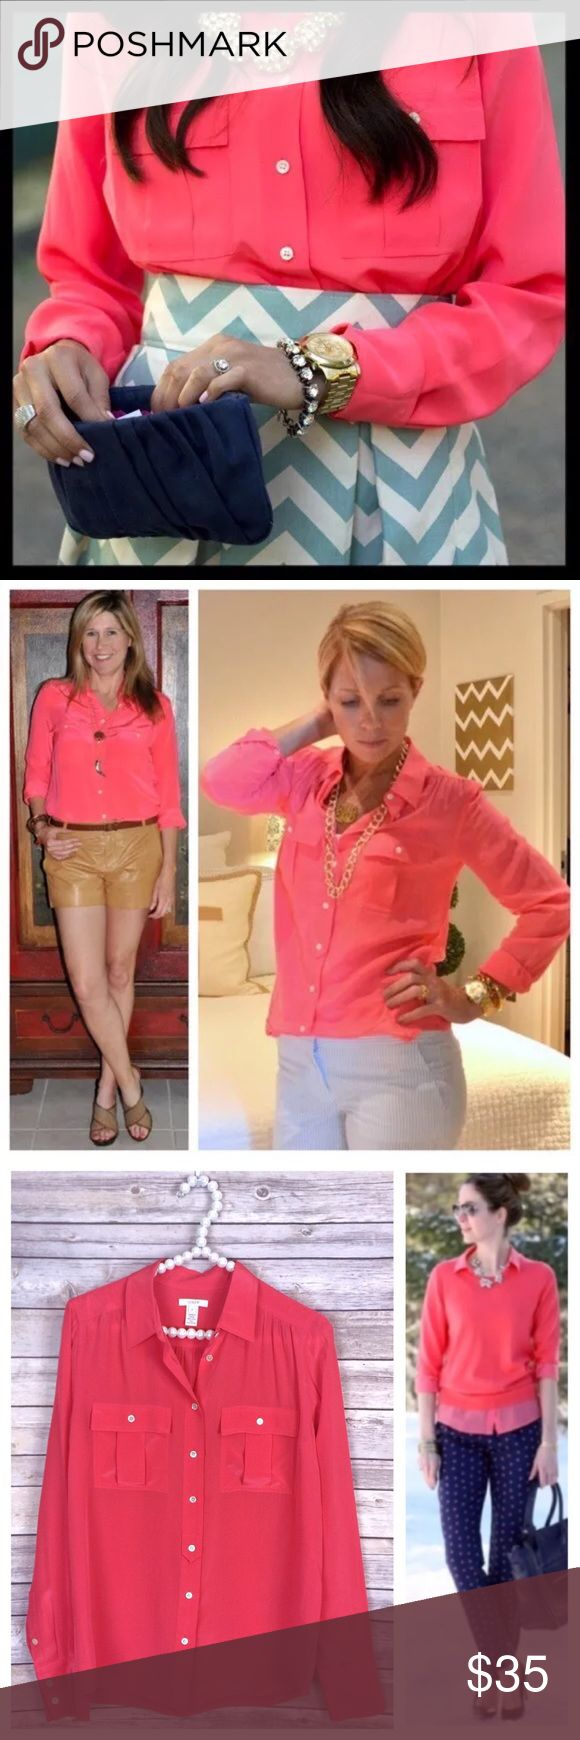 j. crew // coral pink 100% silk blythe blouse Everyone loves Blythe—a classic army shirt reimagined in drapey and feminine silk crepe de chine. Dressed up or down, this flattering-on-everyone top is the ultimate in effortless chic. We're sporting ours tucked into sleek pencil skirts for extra polish or languid and loose for that cool-girl look we love. Long sleeves. Color is a bright, beautiful coral pink, but not neon. Excellent preowned condition. J. Crew Tops Blouses